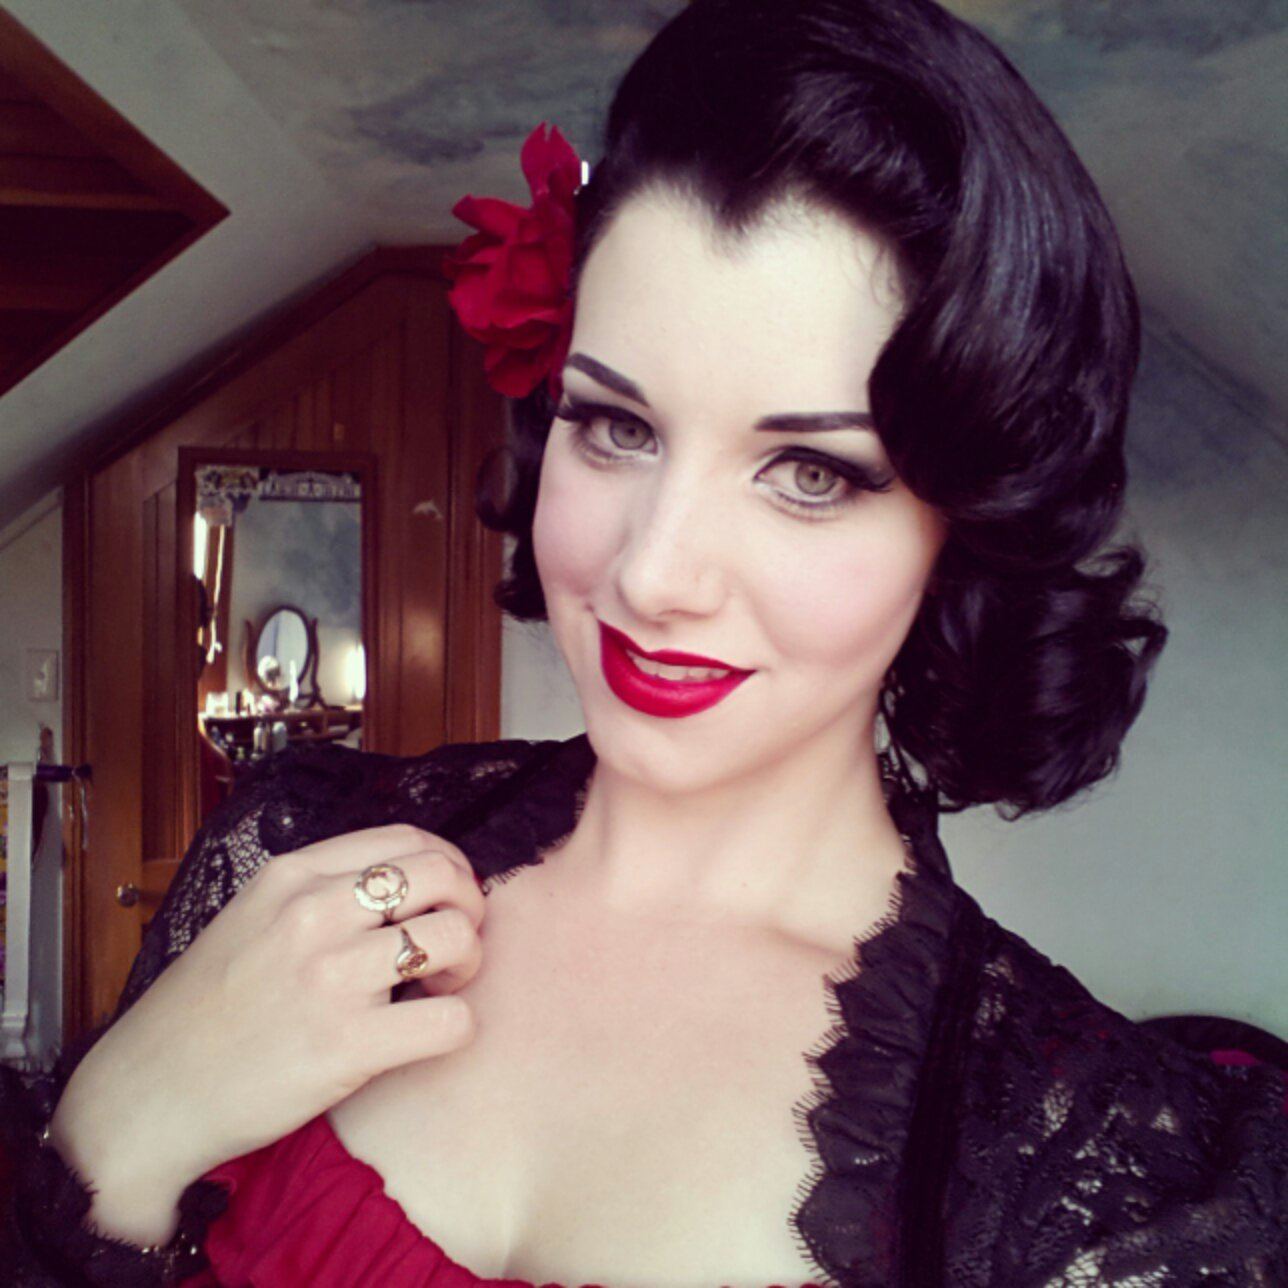 Hairstyles For Short Hair Pin Ups : My Week In Outfits! (14/01-19/01) miss victory violet